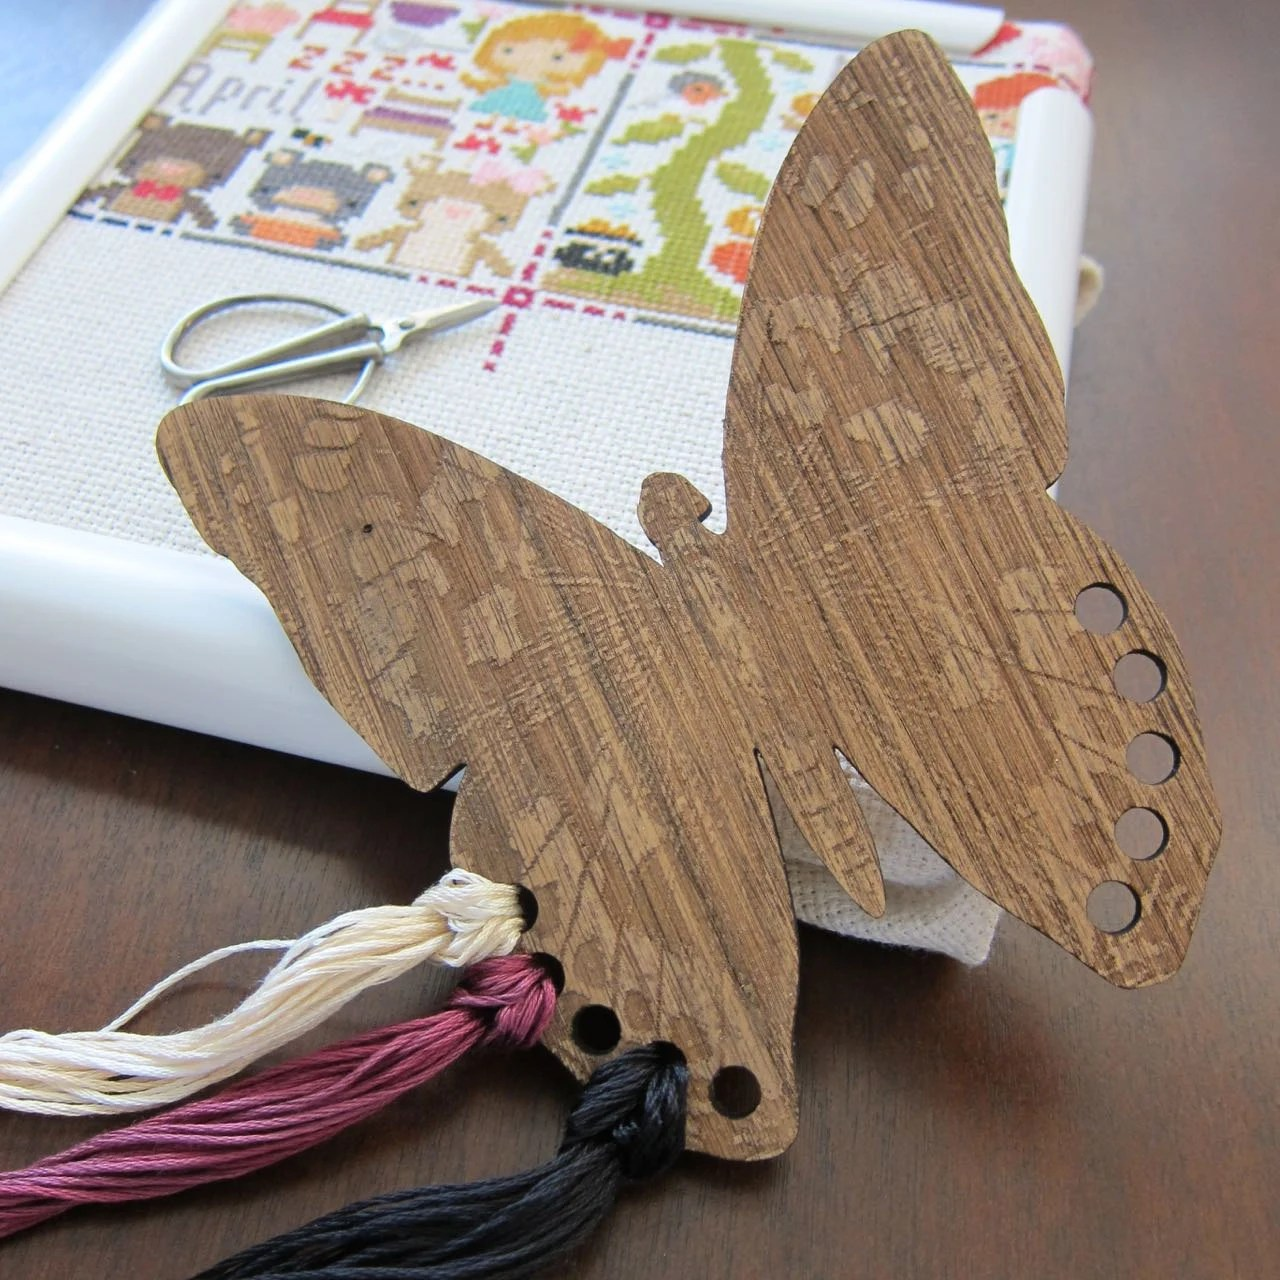 Embroidery Floss Organizer Wooden Thread Holder Butterfly